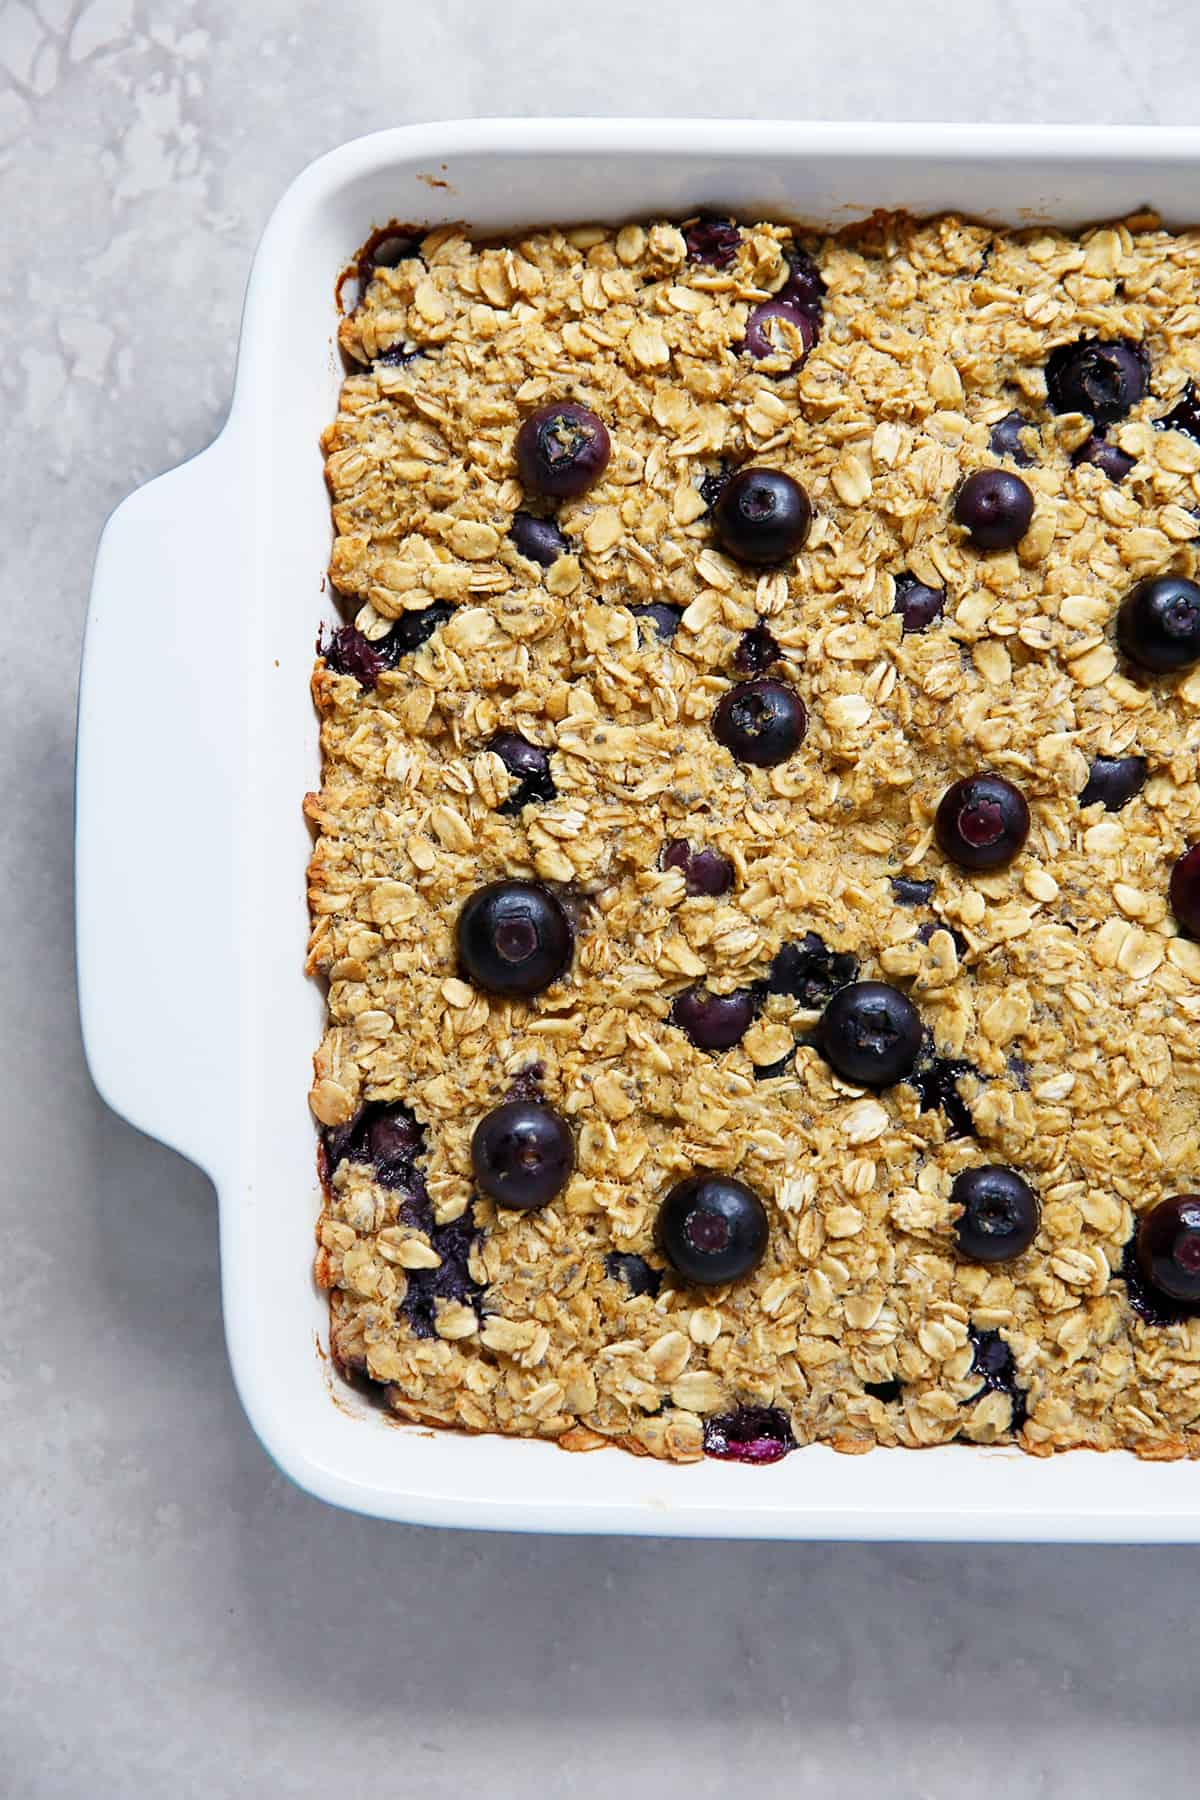 Dish with blueberry baked oatmeal